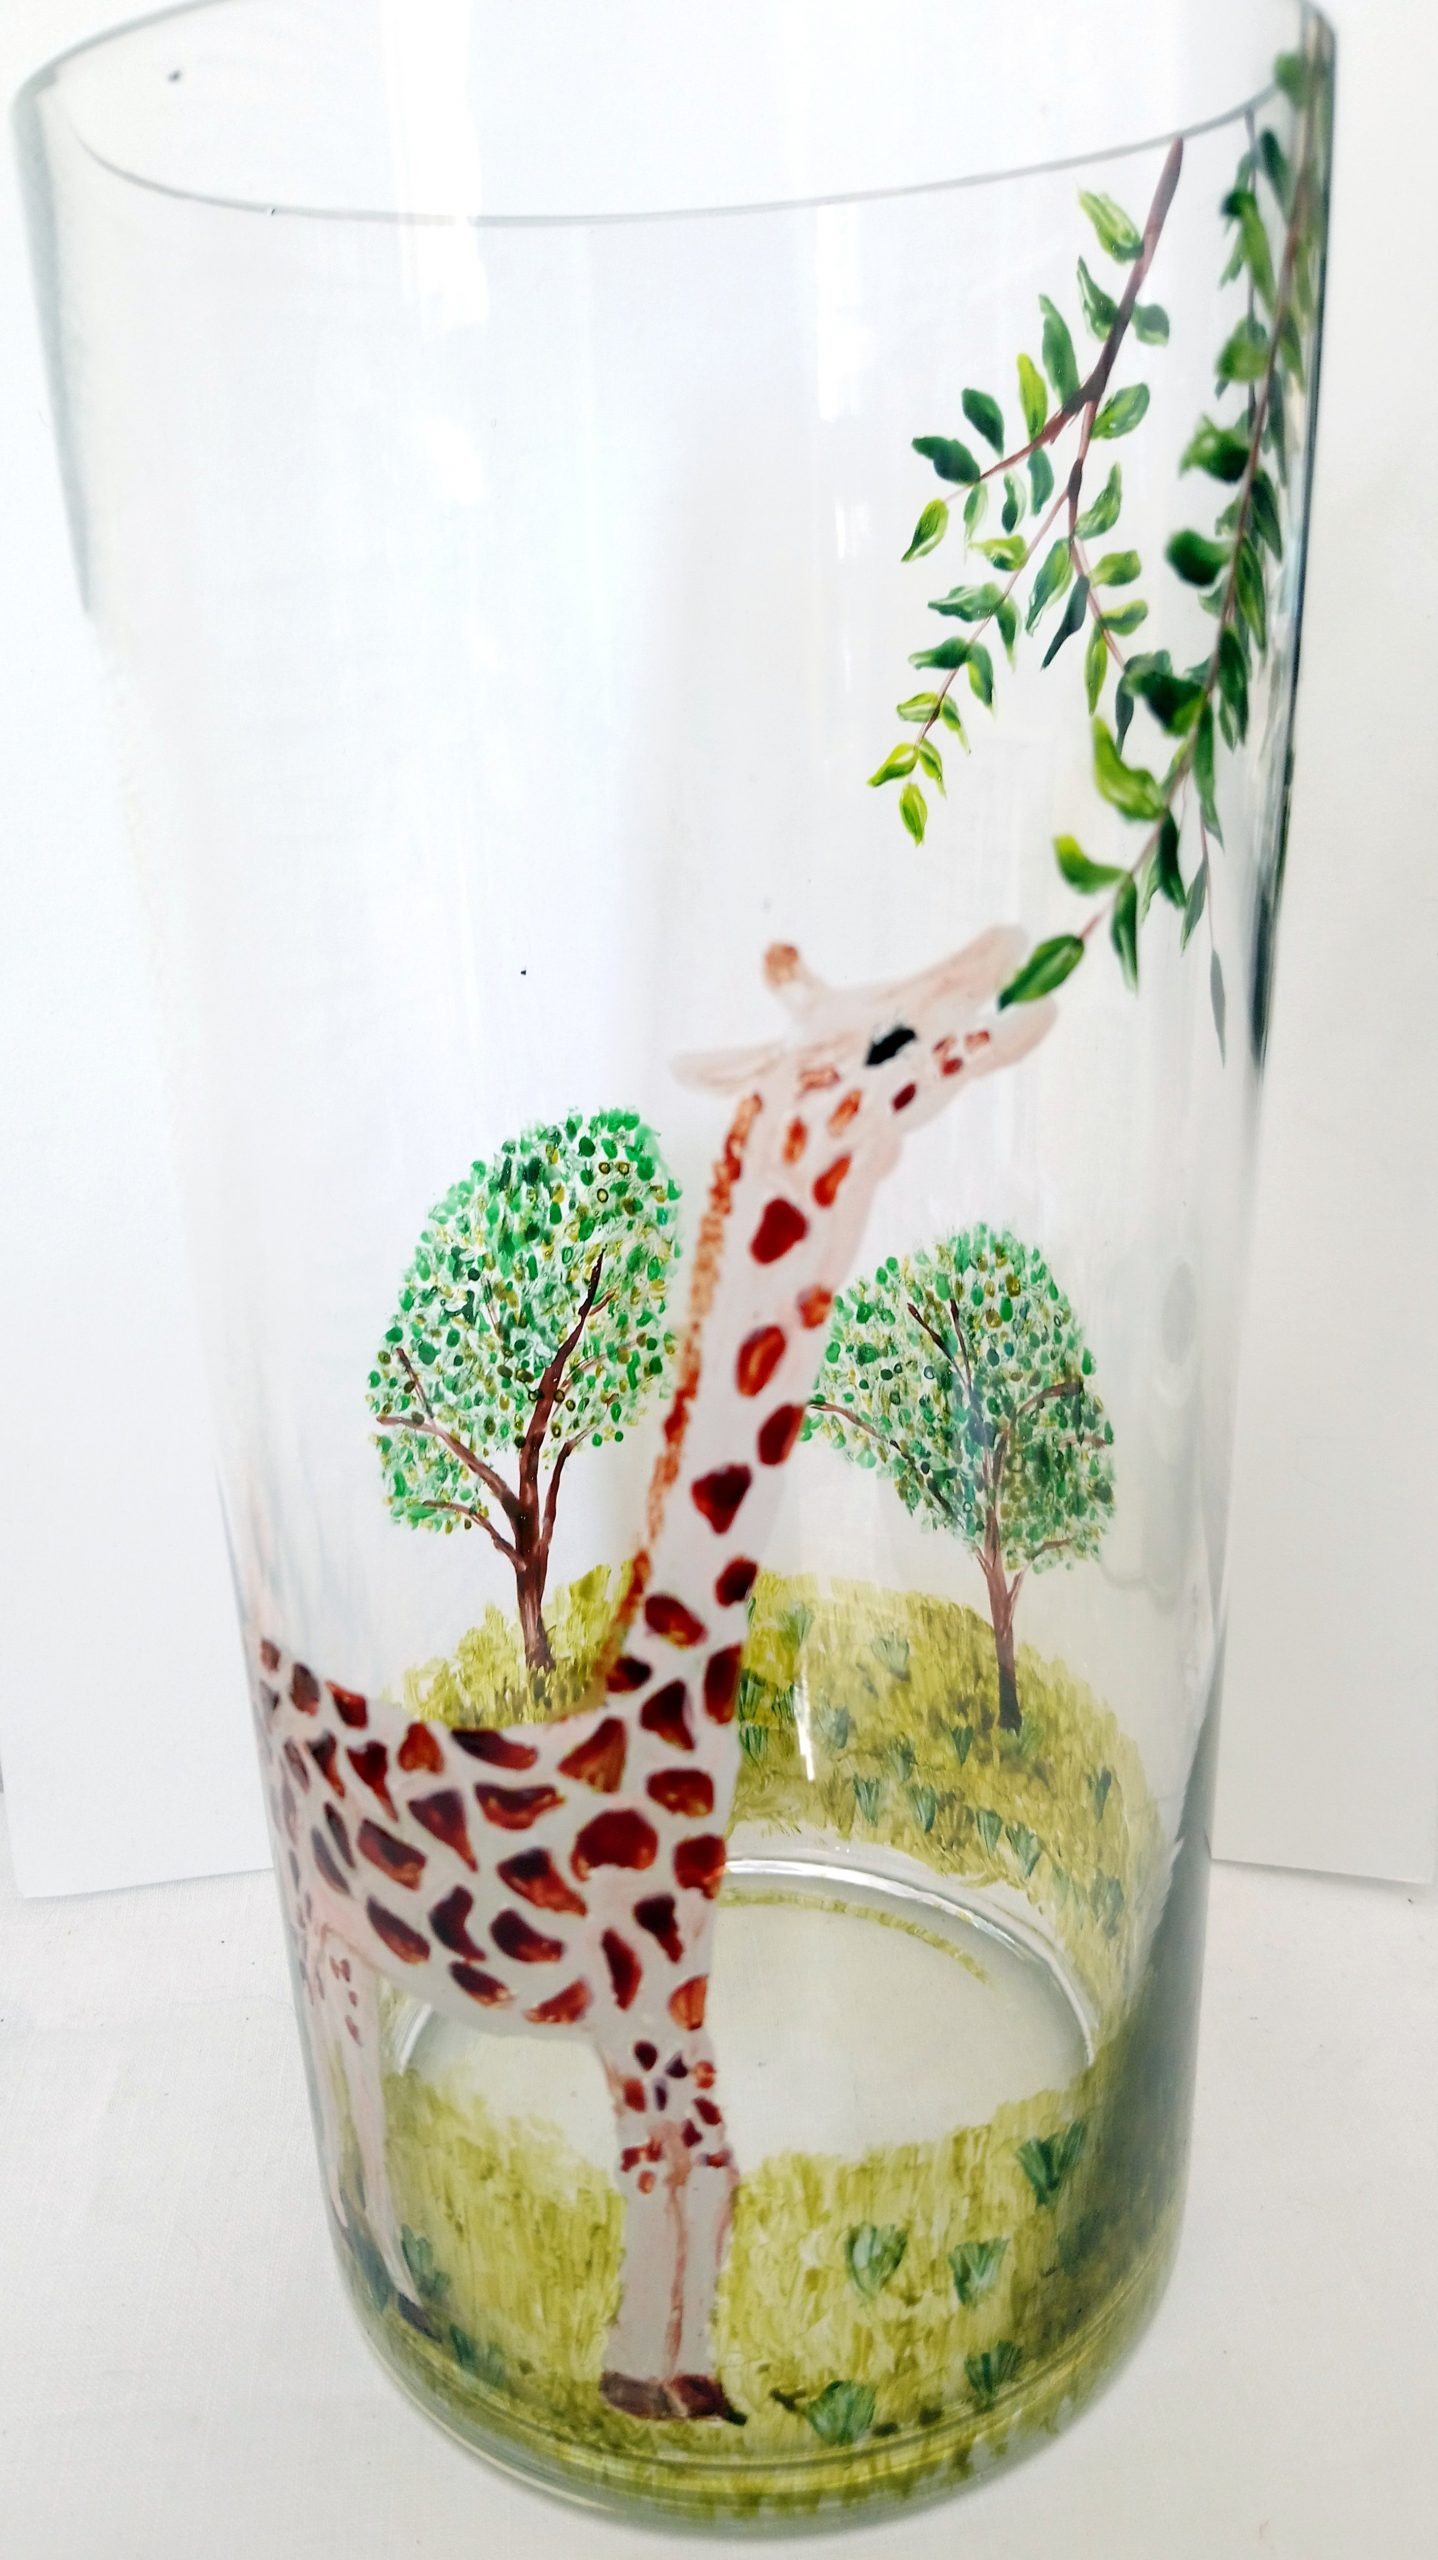 A Giraffe vase gift hand painted with a giraffe reaching up to leaves on a tree